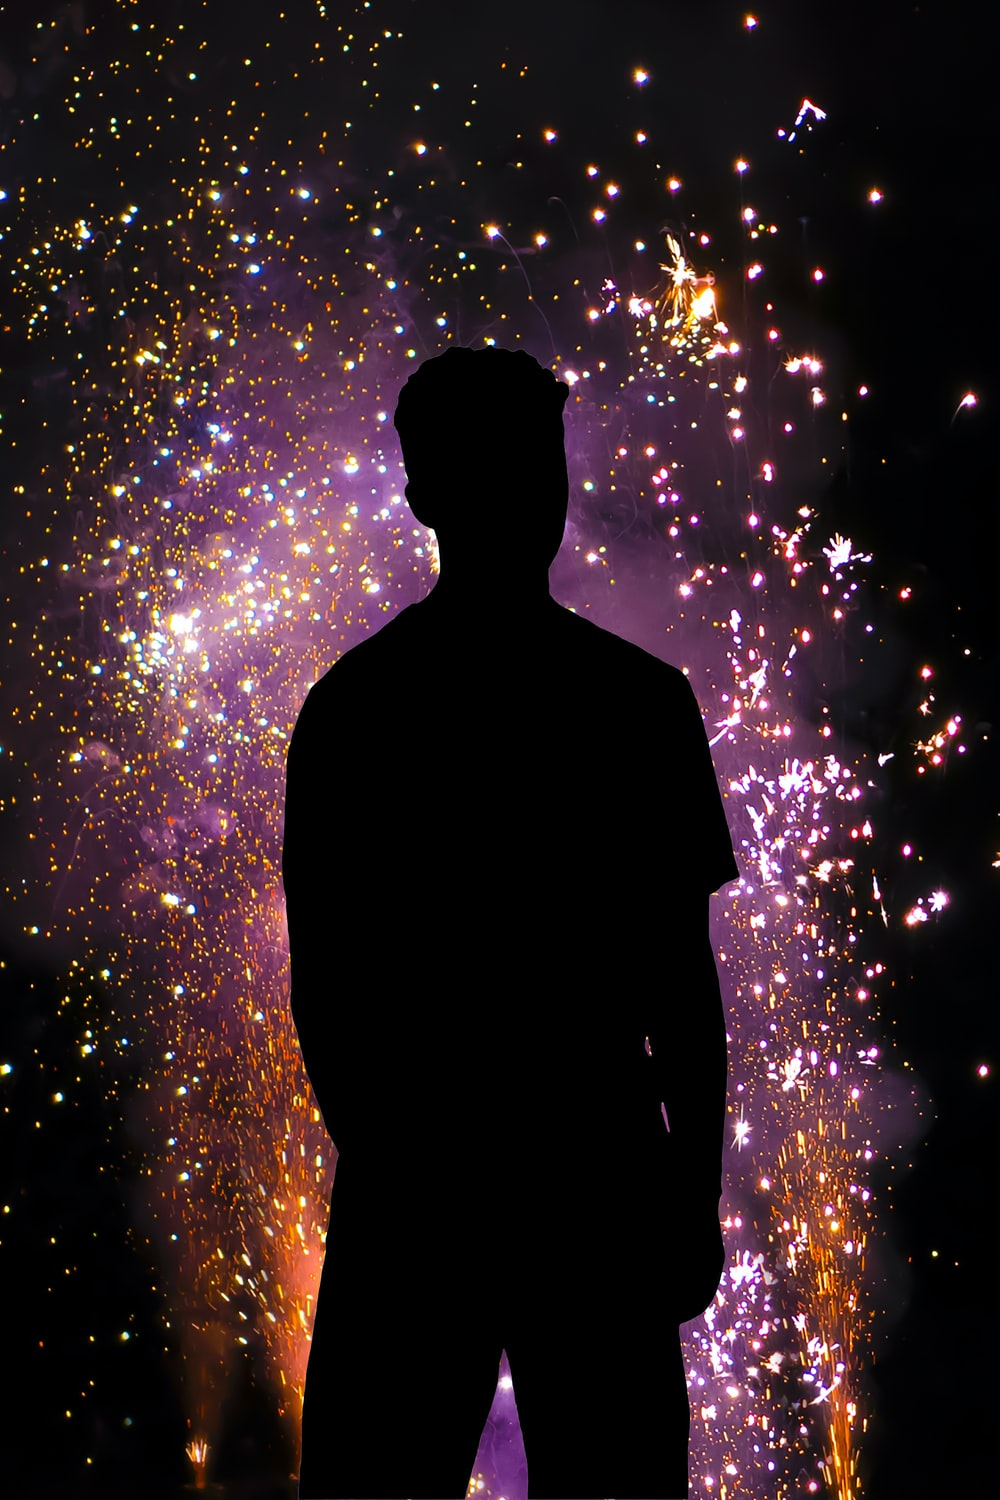 silhouette of man standing under fireworks